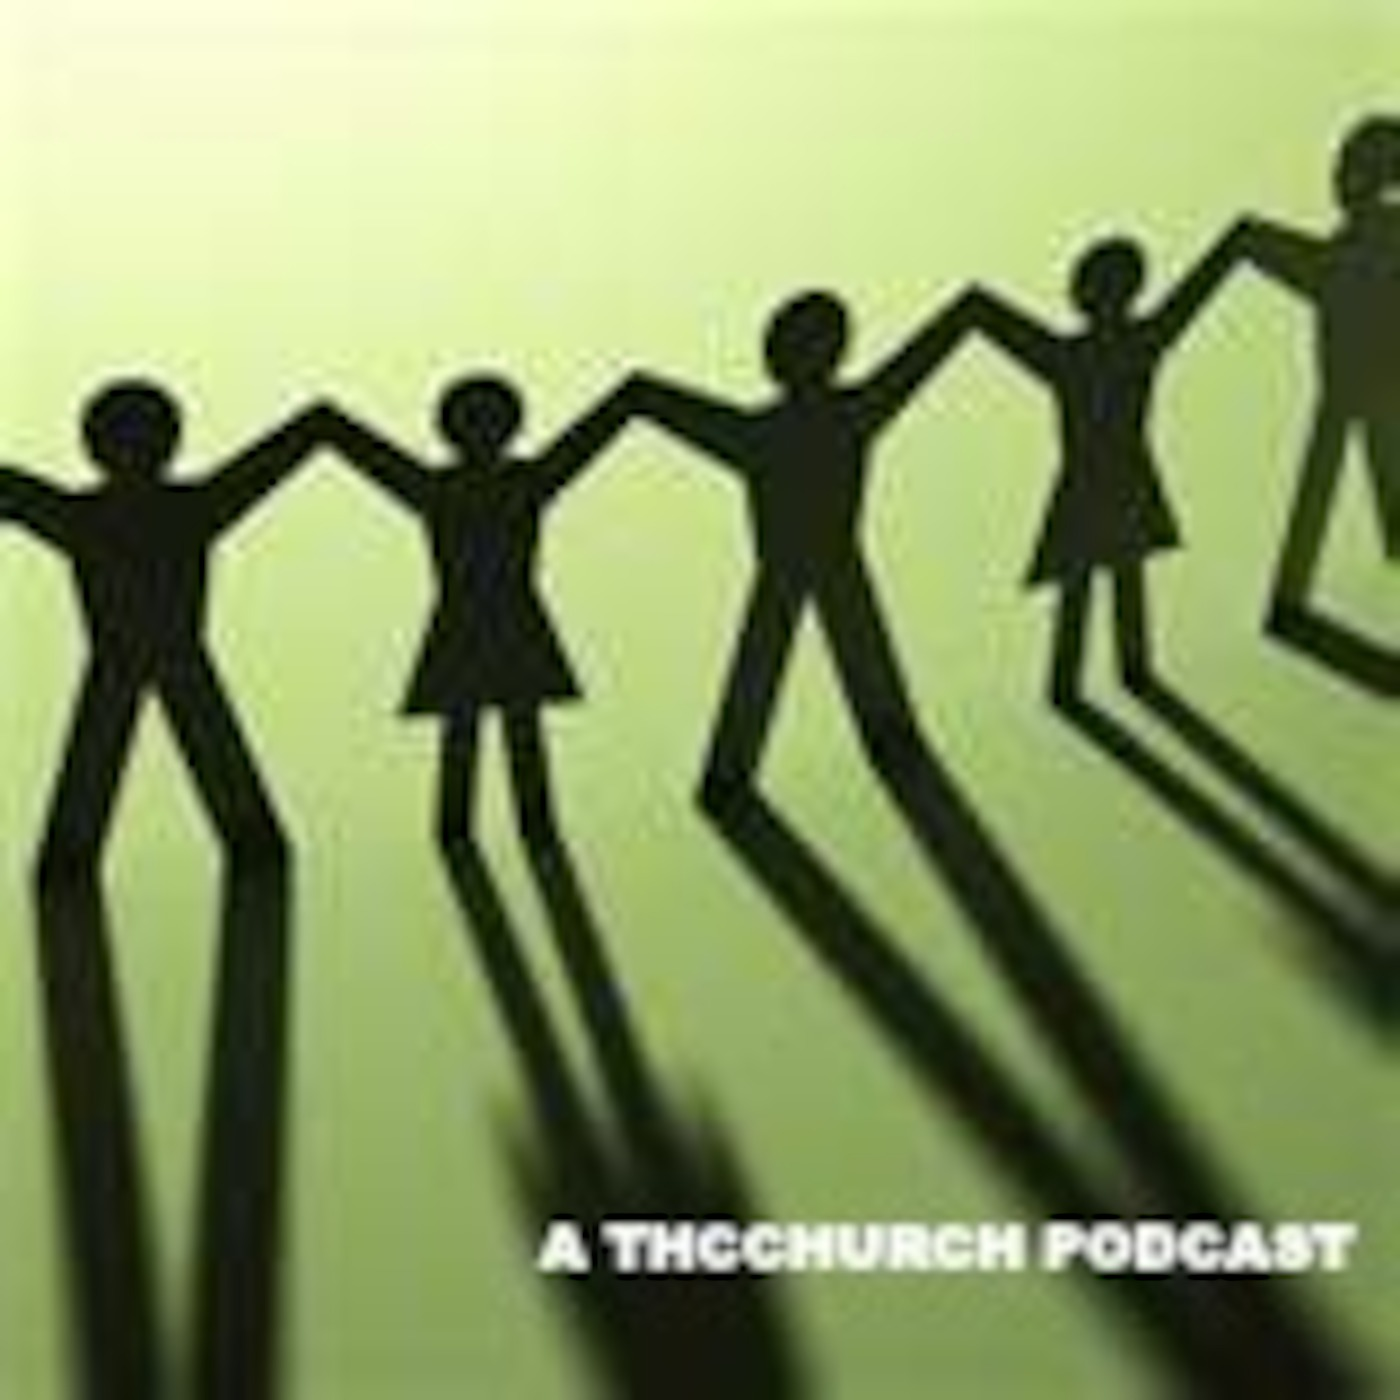 The THCChurch Podcast